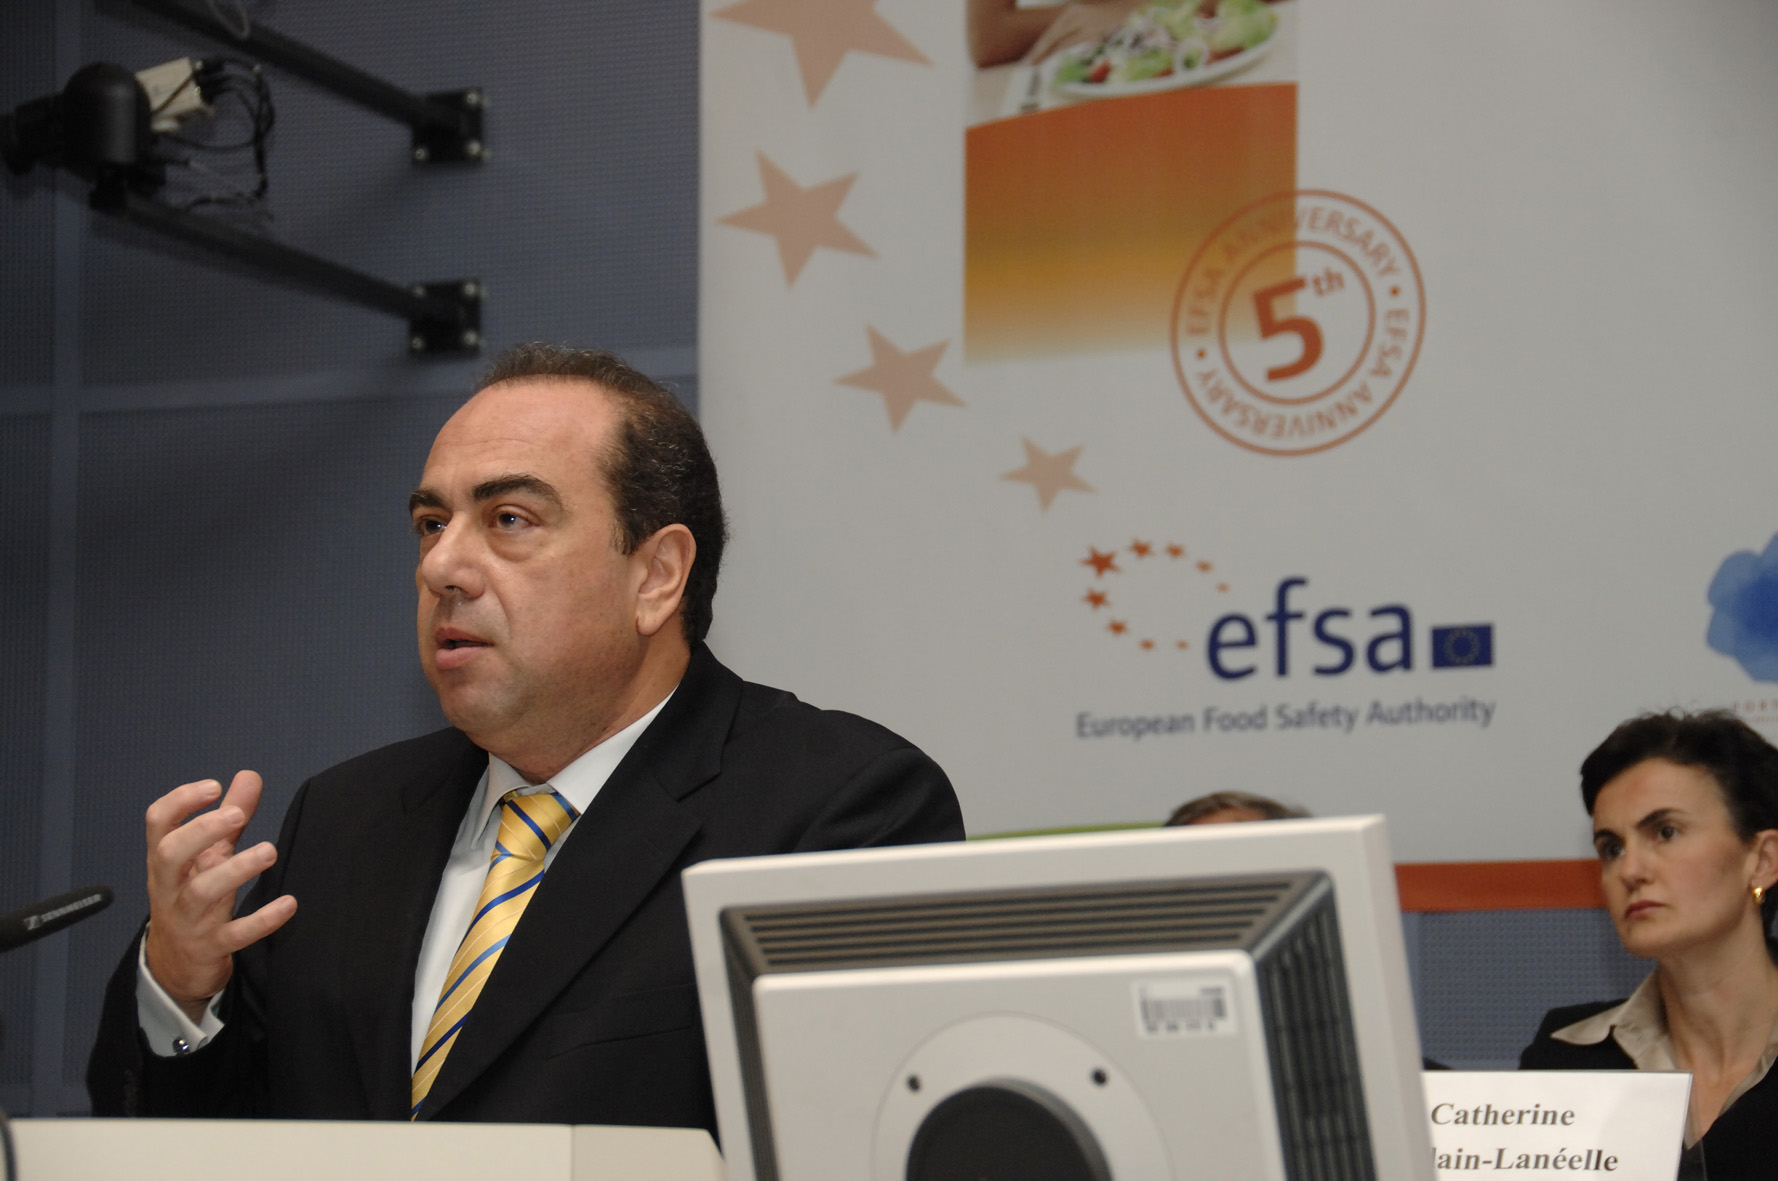 Scientific Forum of the European Food Safety Authority From safe food to healthy diets